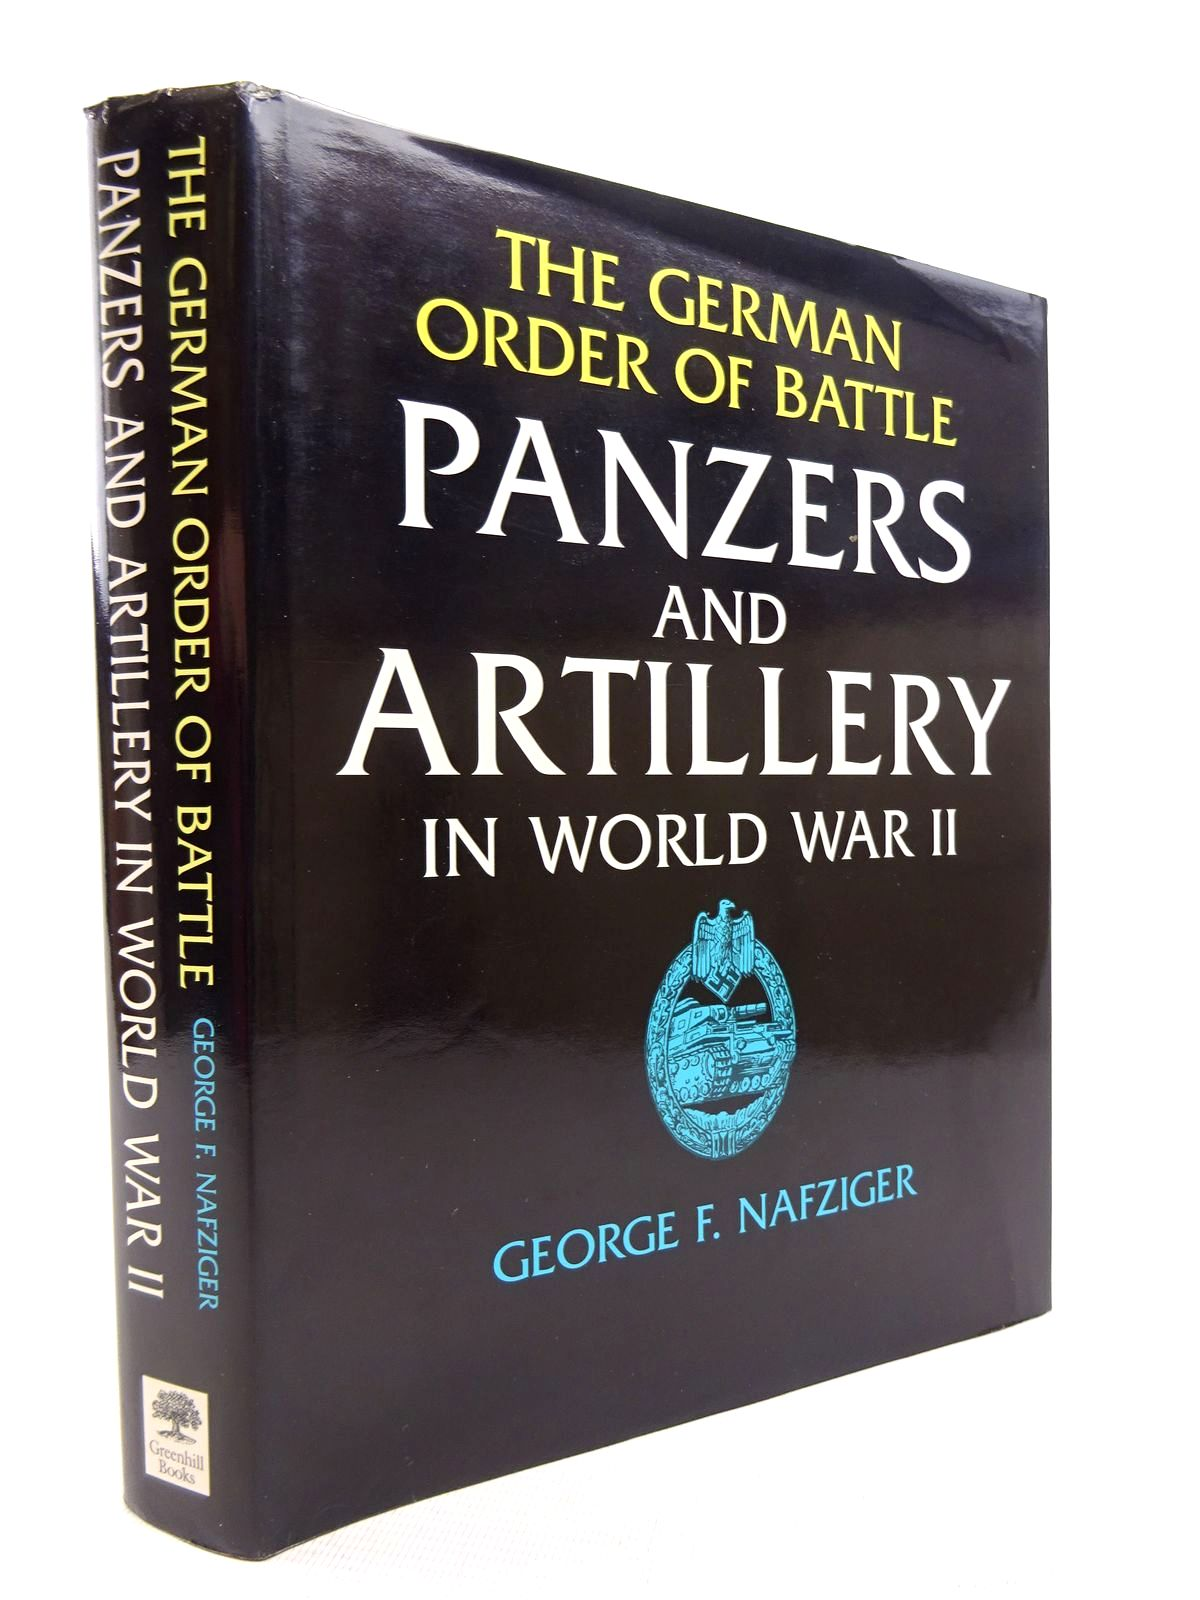 Photo of THE GERMAN ORDER OF BATTLE PANZERS AND ARTILLERY IN WORLD WAR II written by Nafziger, George published by Greenhill Books (STOCK CODE: 1816103)  for sale by Stella & Rose's Books